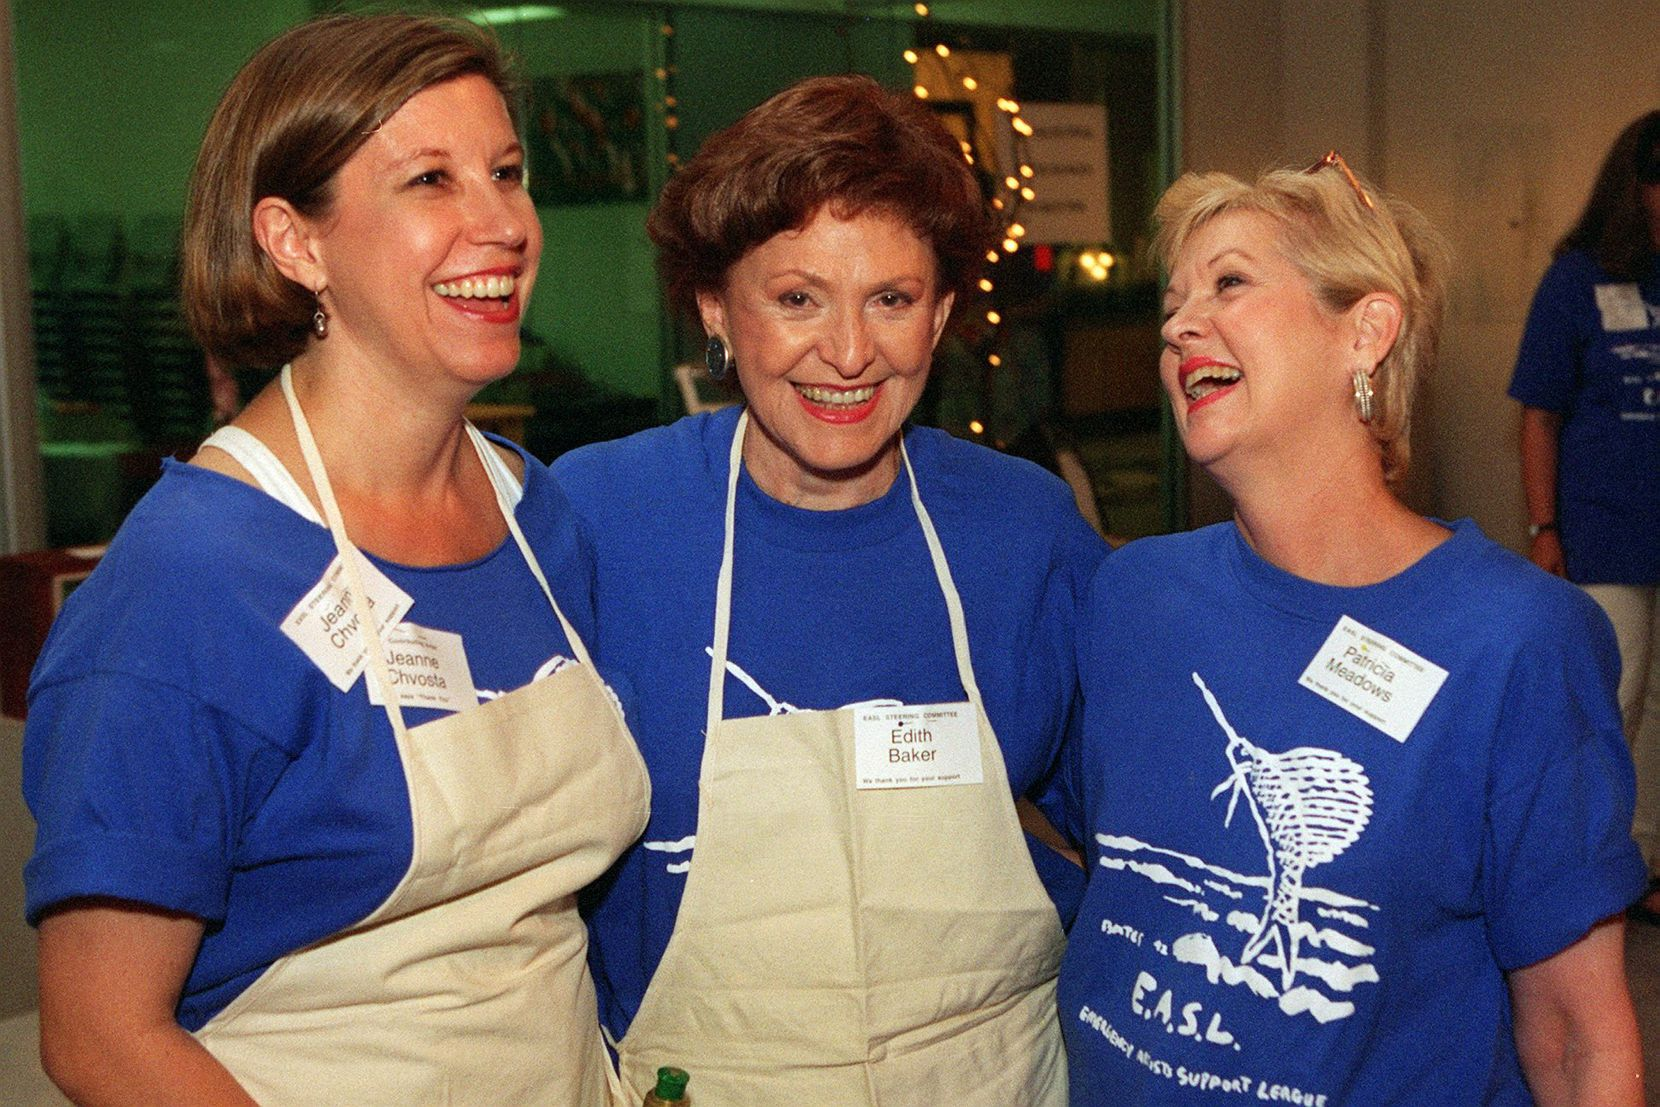 Jeanne Chvosta, Edith Baker and Patricia Meadows at the EASL Party being held in the Dallas Design District in 1997.